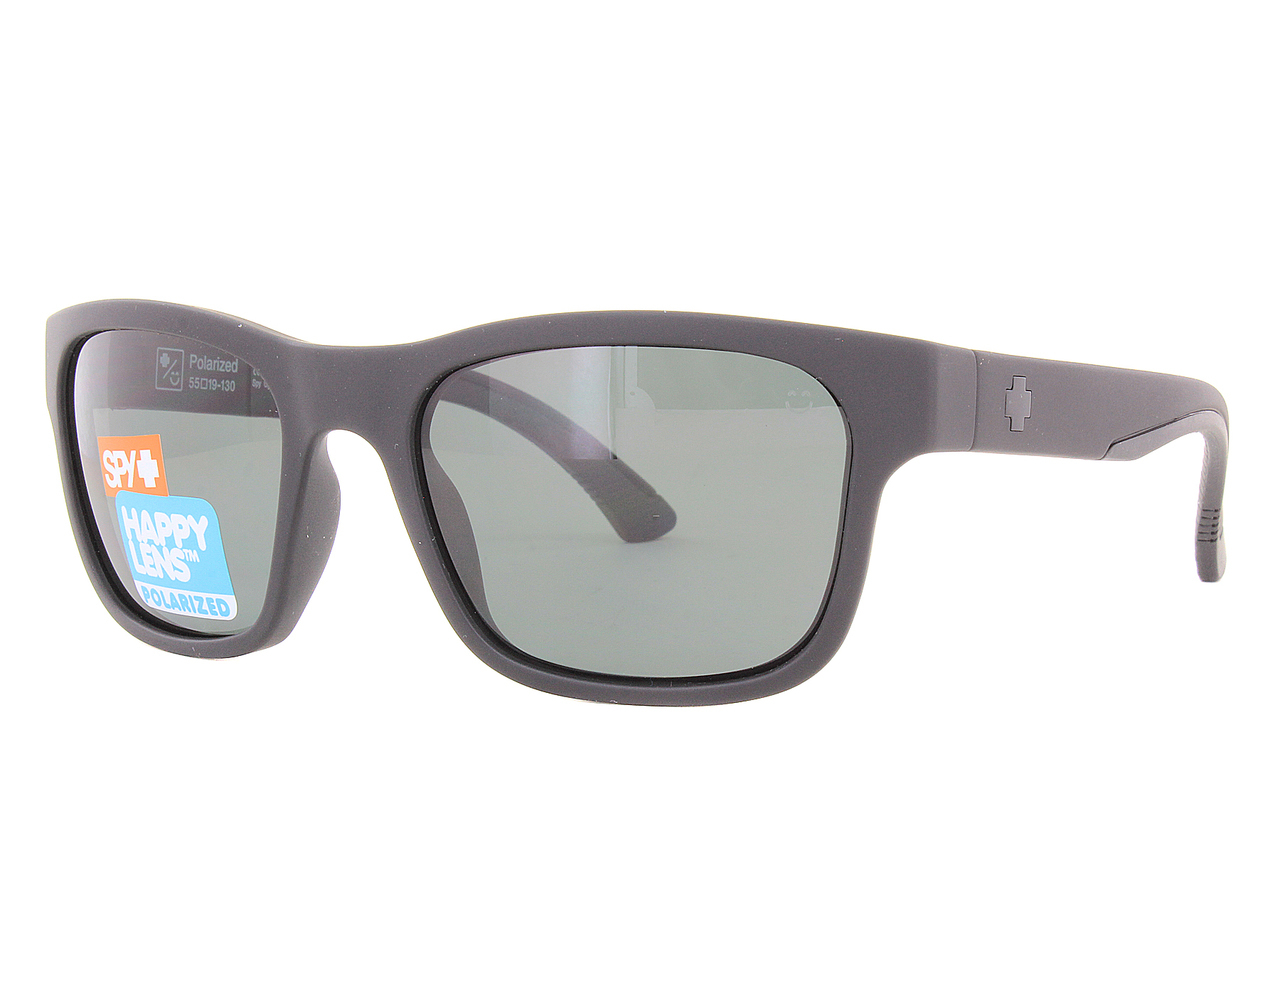 deb3189be0a70 Details about New Spy HUNT-673469374864 Matte Black   Happy Grey Green  Sunglasses